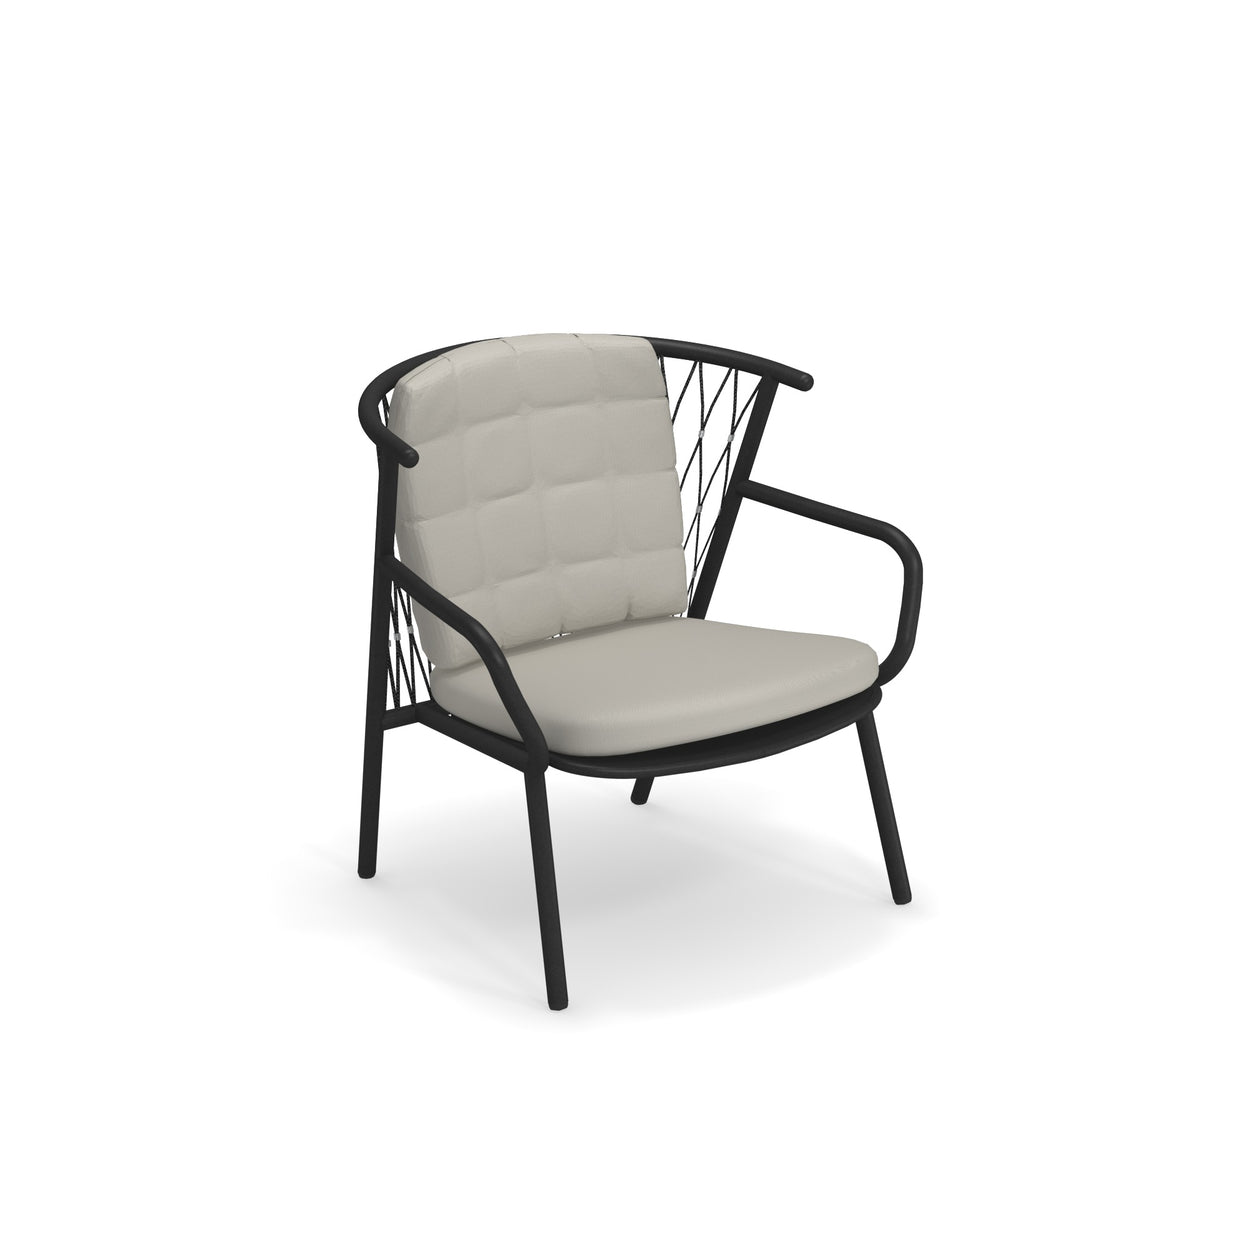 EMU Nef Lounge Chair / Low Back